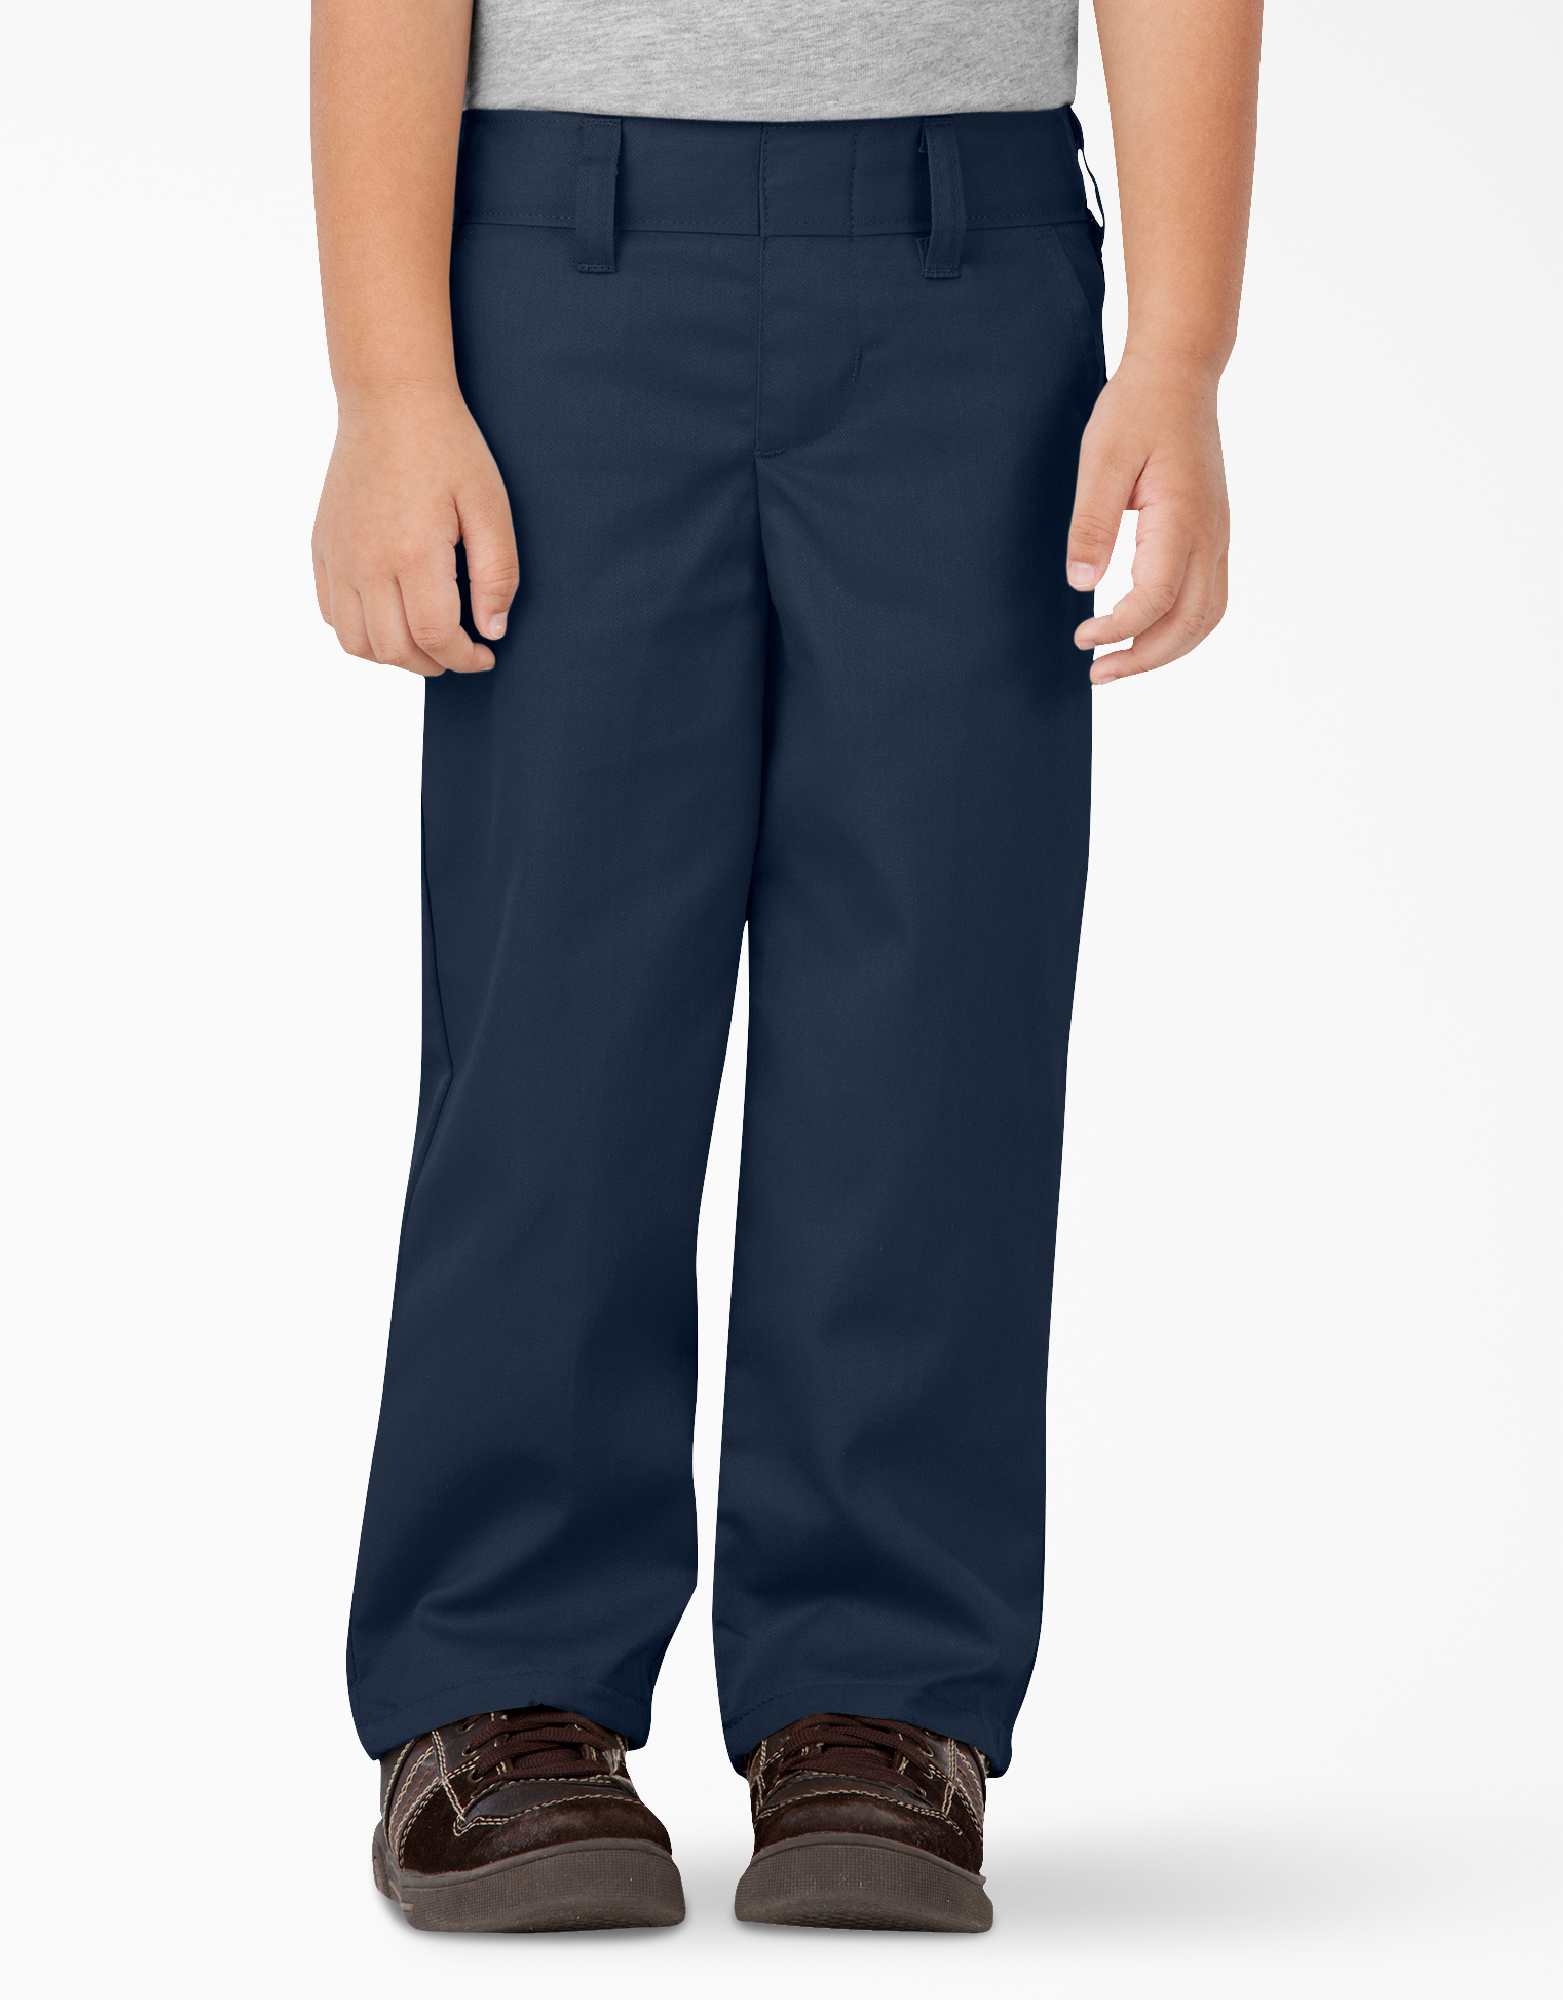 Toddler Classic Fit Straight Leg Pull-on Pants - Dark Navy (DN)